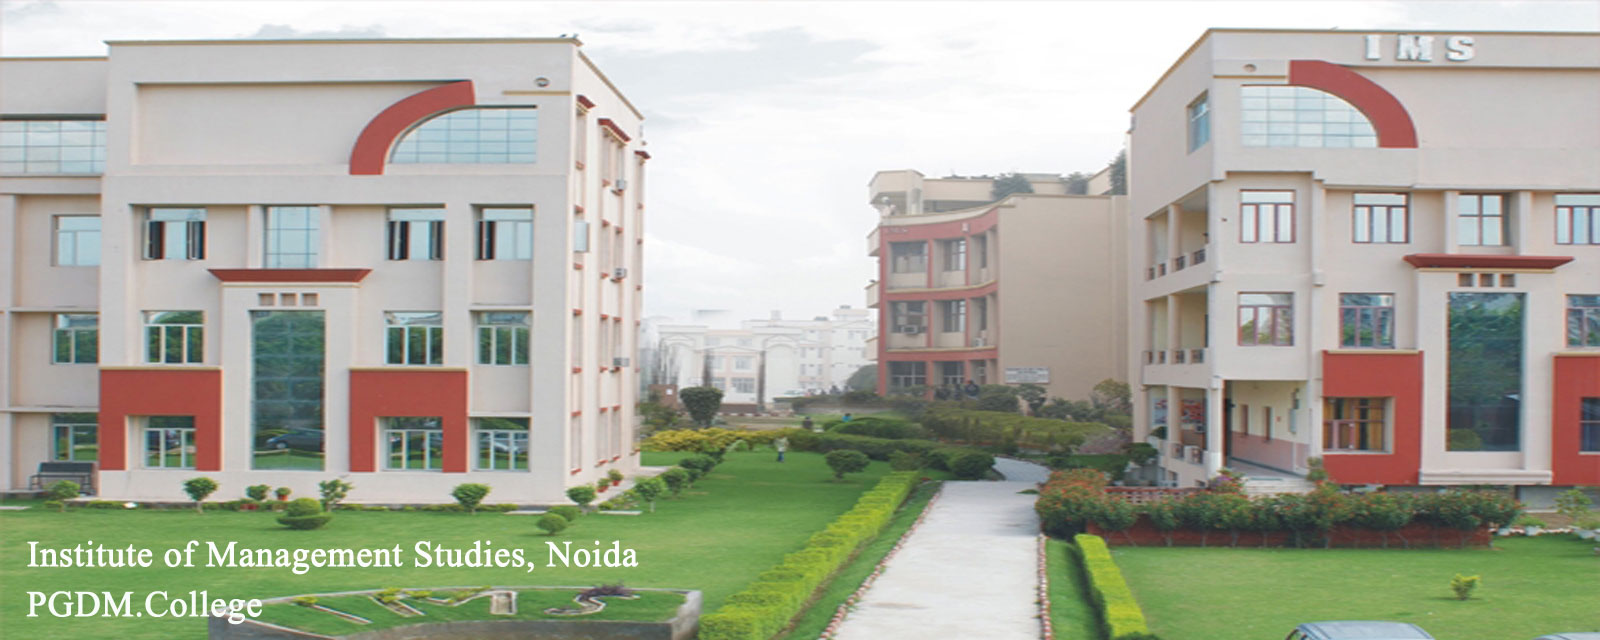 IMS noida: Institute of Management Studies